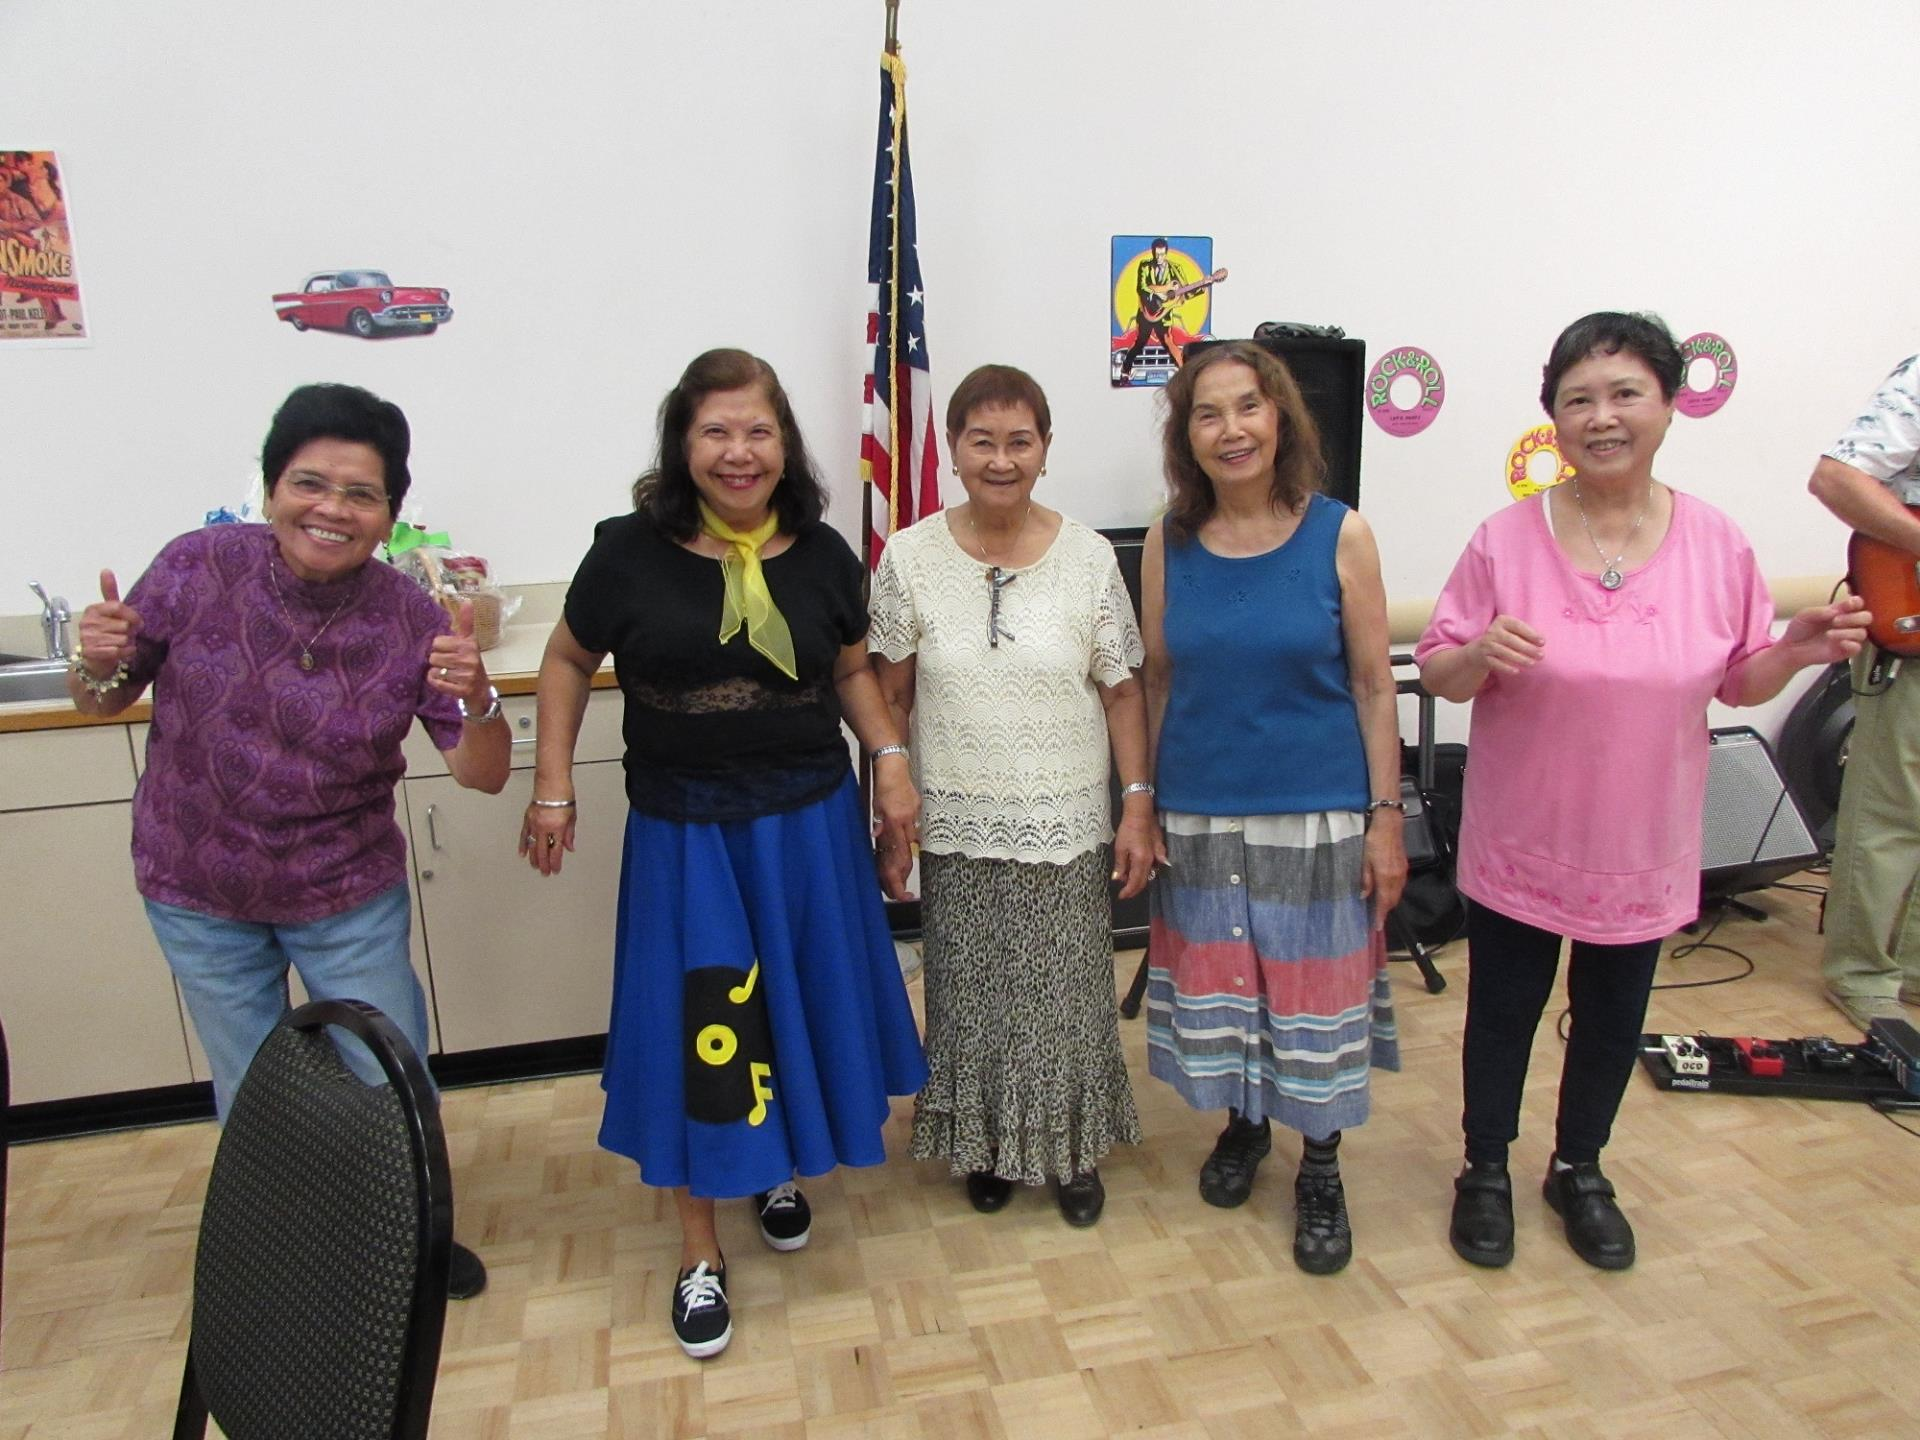 Five ladies at the Senior Center Father's Day celebration